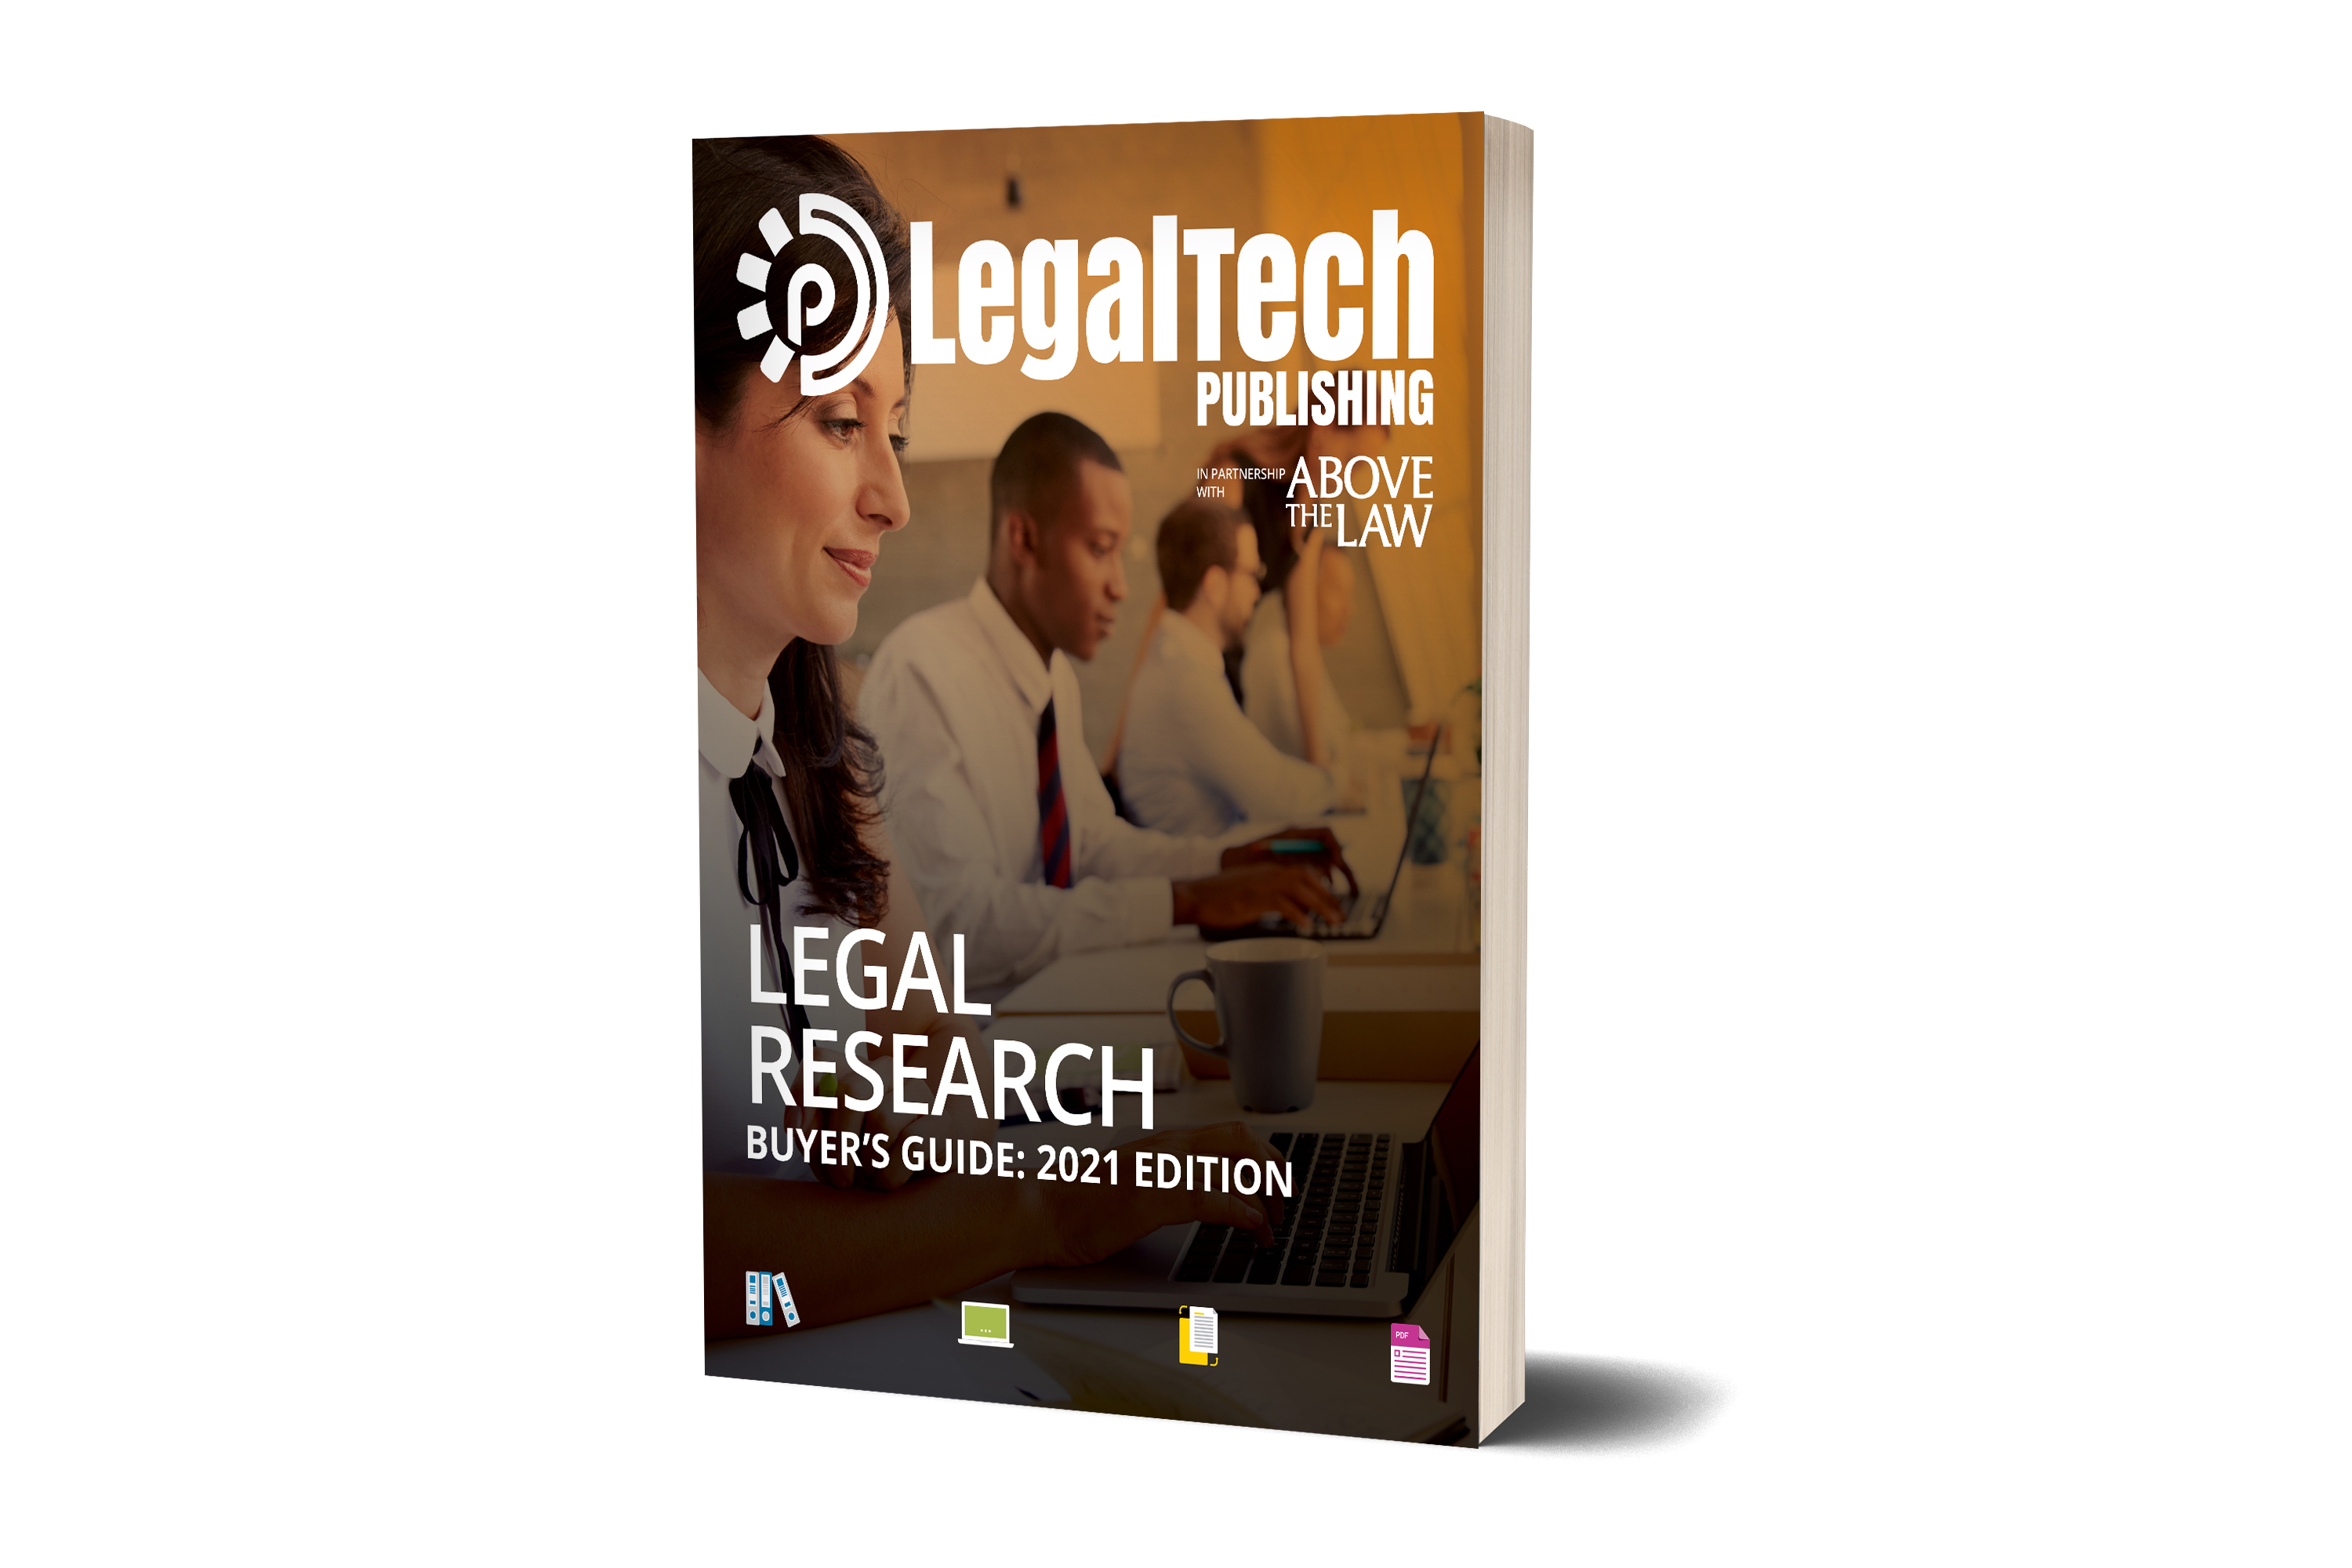 Legal-Research-Buyers-Guide-2021-Cover-Standing